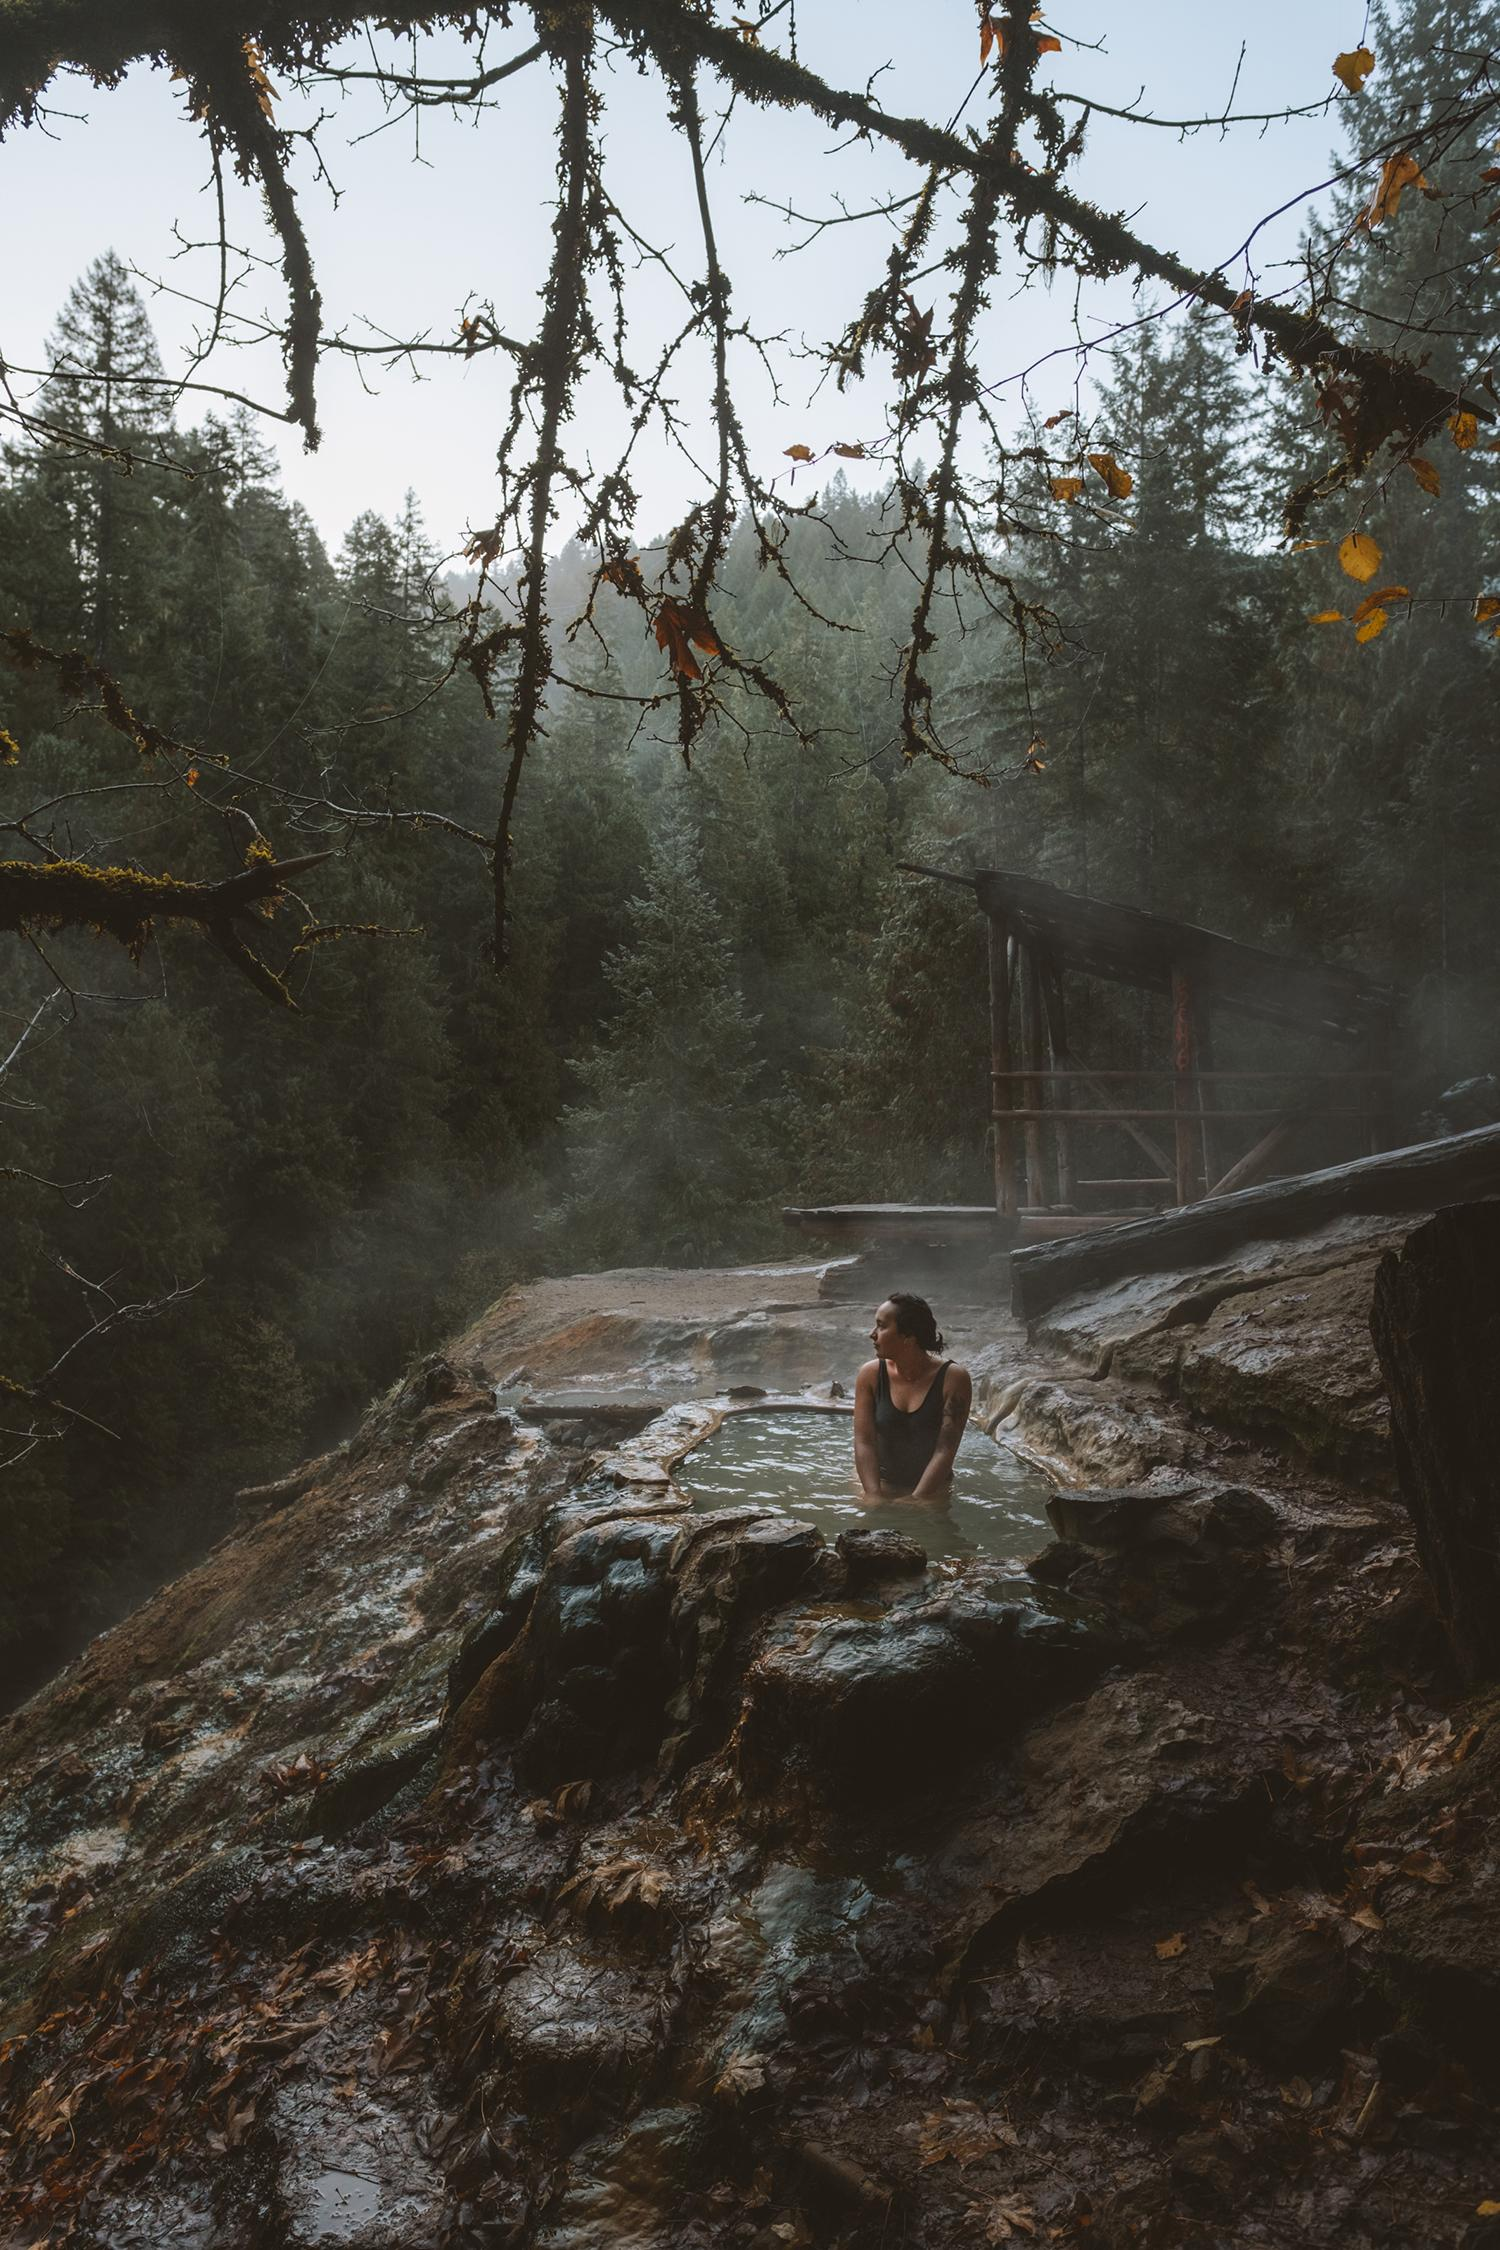 Located in the central Oregon Cascades, Umpqua Hot Springs is accessible year-round and features a multitude of hot pools (and one covered) located on a mineral deposit above the North Umpqua River. Only a 1/4 mile hike from the parking area, and on a first come first serve basis, this hot spring is sure to please visitors. Beat the crowds by coming early in the morning for sunrise, and make sure to pack out any waste! While you're at it, you might as well make a stop at Toketee Falls as well! Located roughly 10 minutes from the springs, this incredibly short hike requires very little effort for a huge reward of a gorgeous cascading waterfall. (Image: Ryan McBoyle / Seattle Refined)